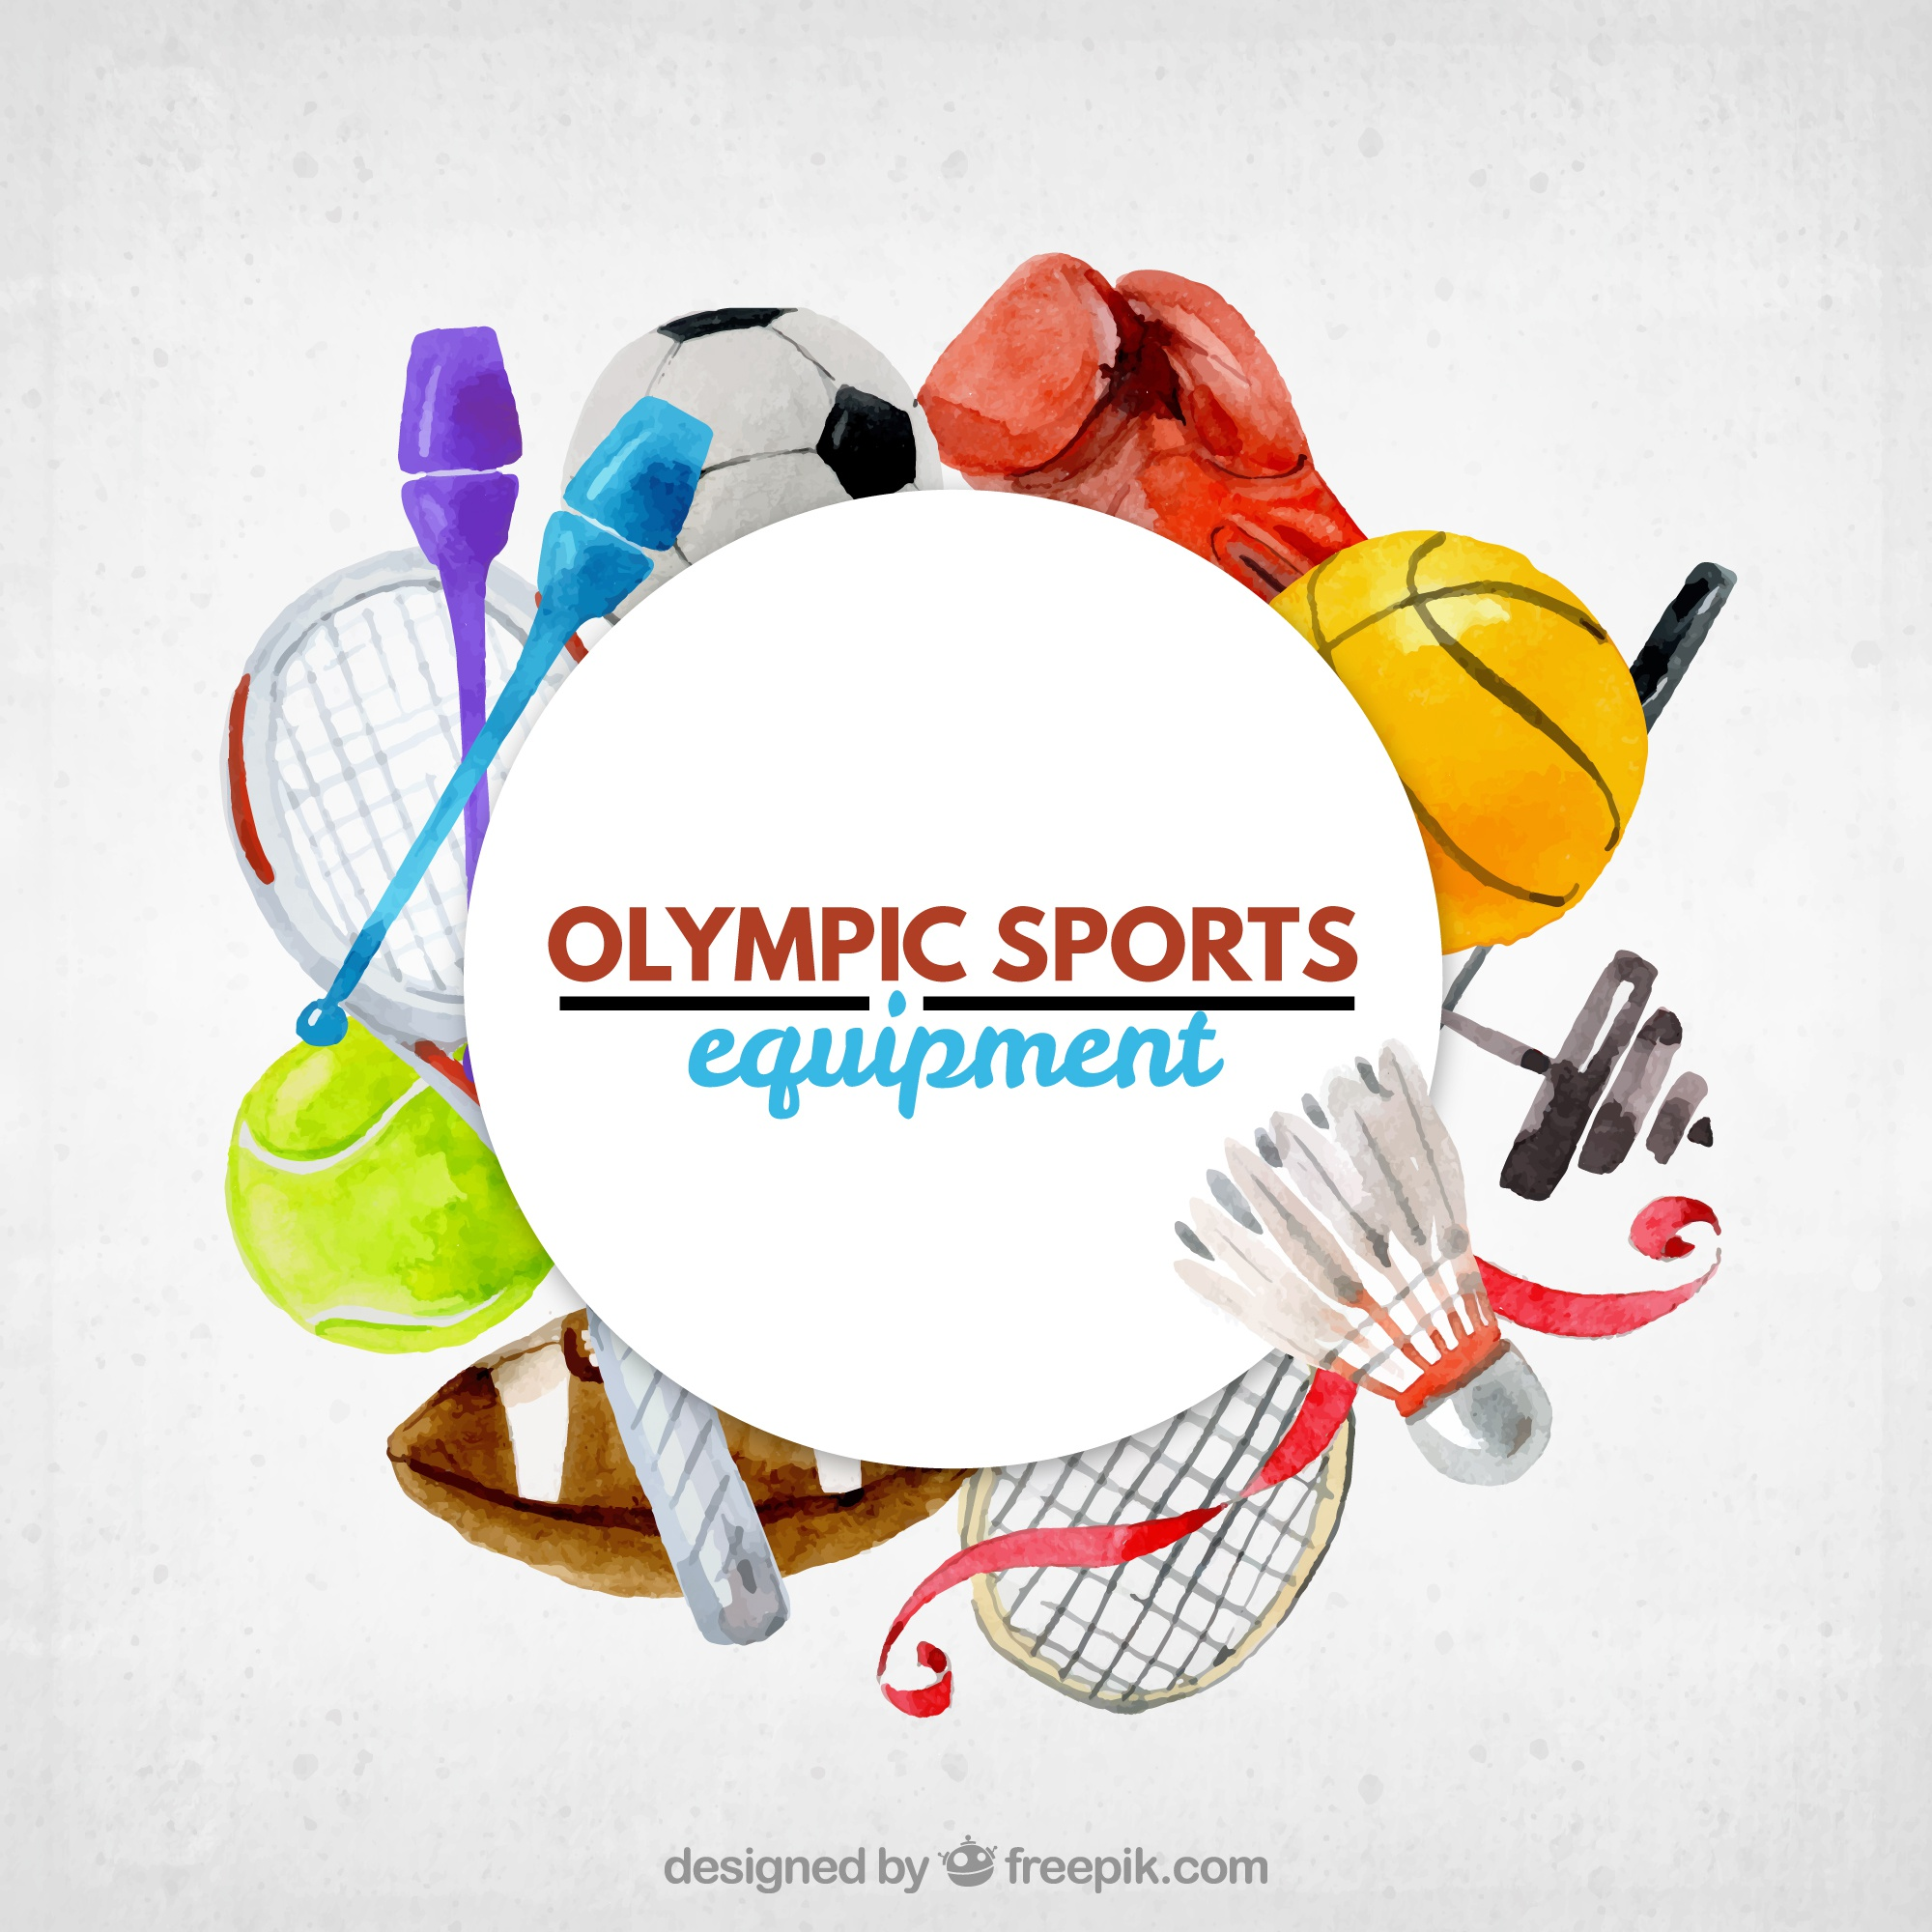 Cute watercolor olumpic sports equipment background